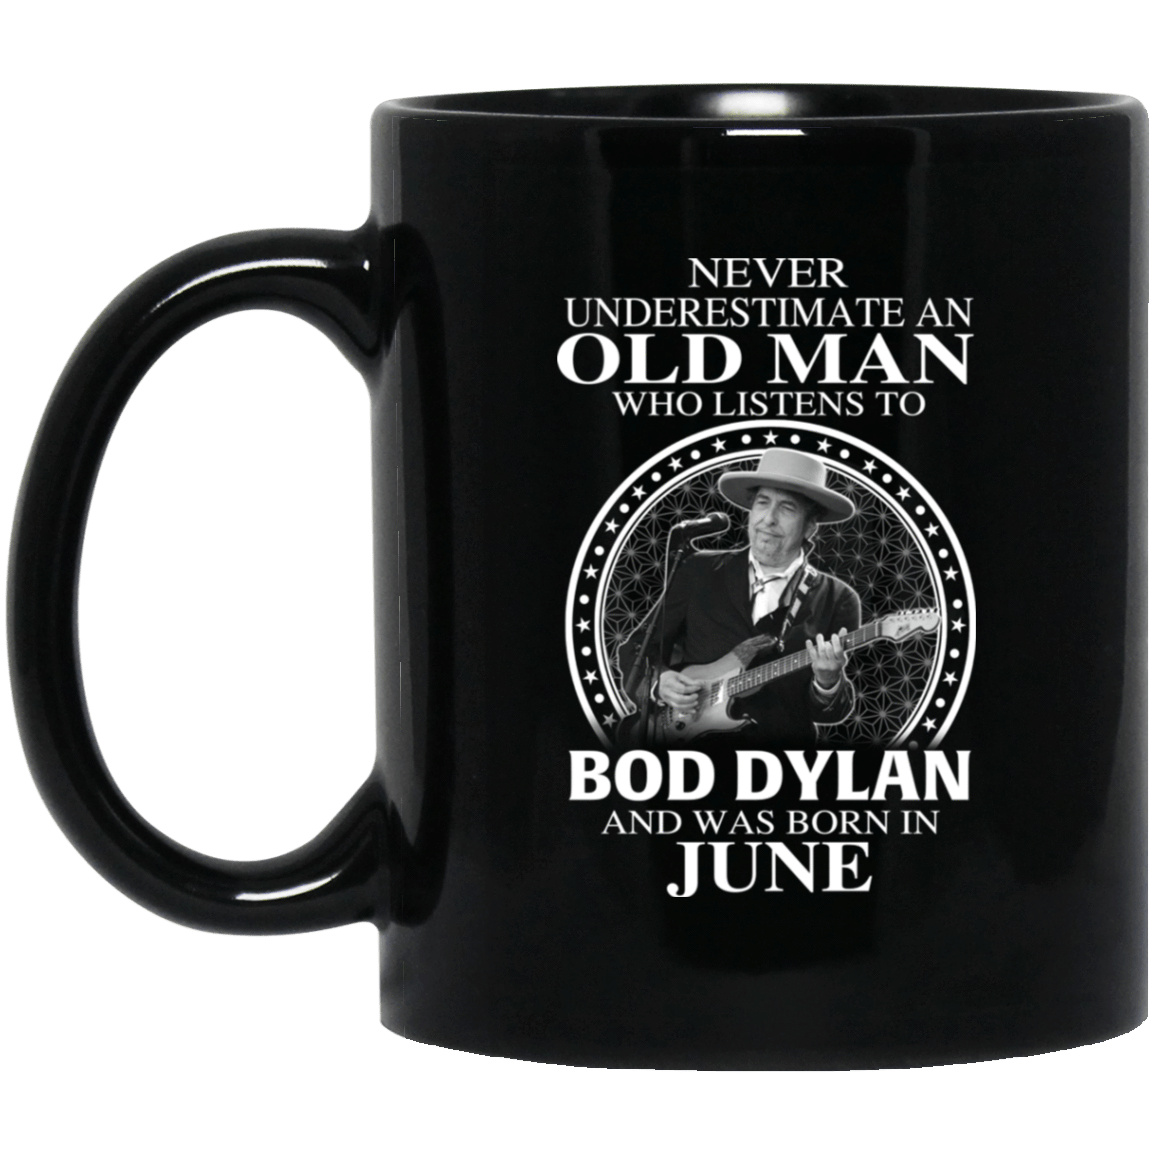 An Old Man Who Listens To Bob Dylan And Was Born In June Mug 1065-10181-76154385-49307 - Tee Ript